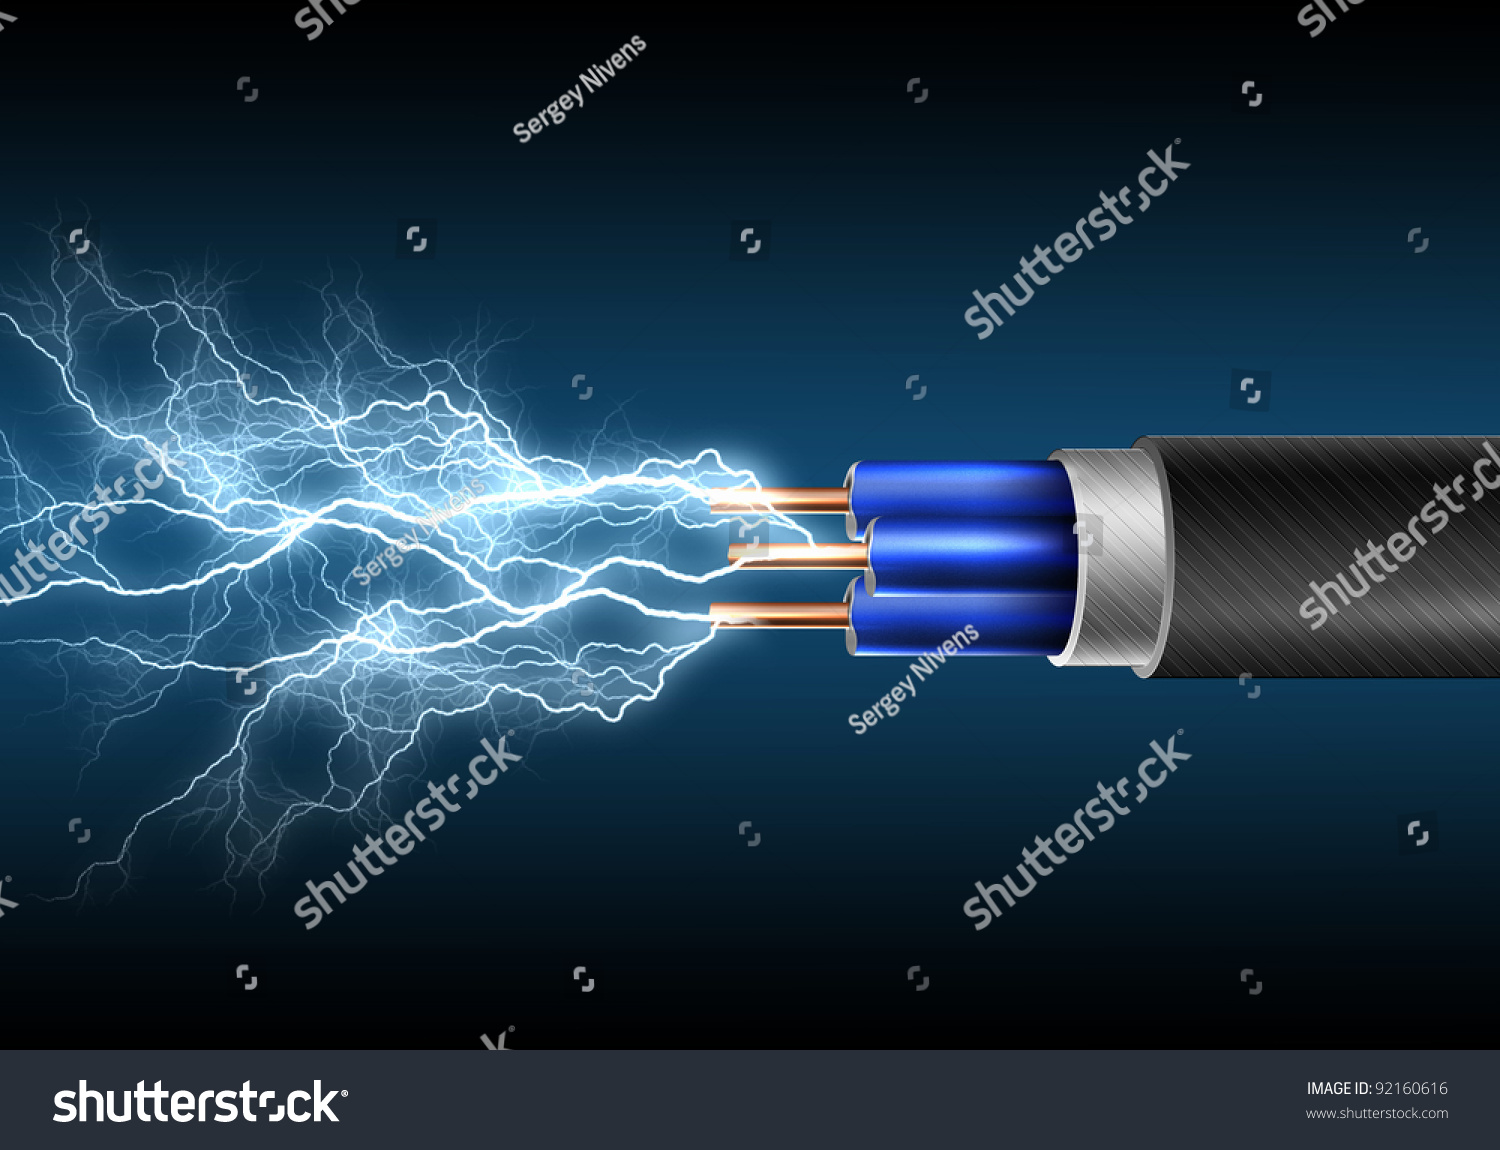 Electric Cord Electricity Sparks Symbol Power Stock Illustration ...